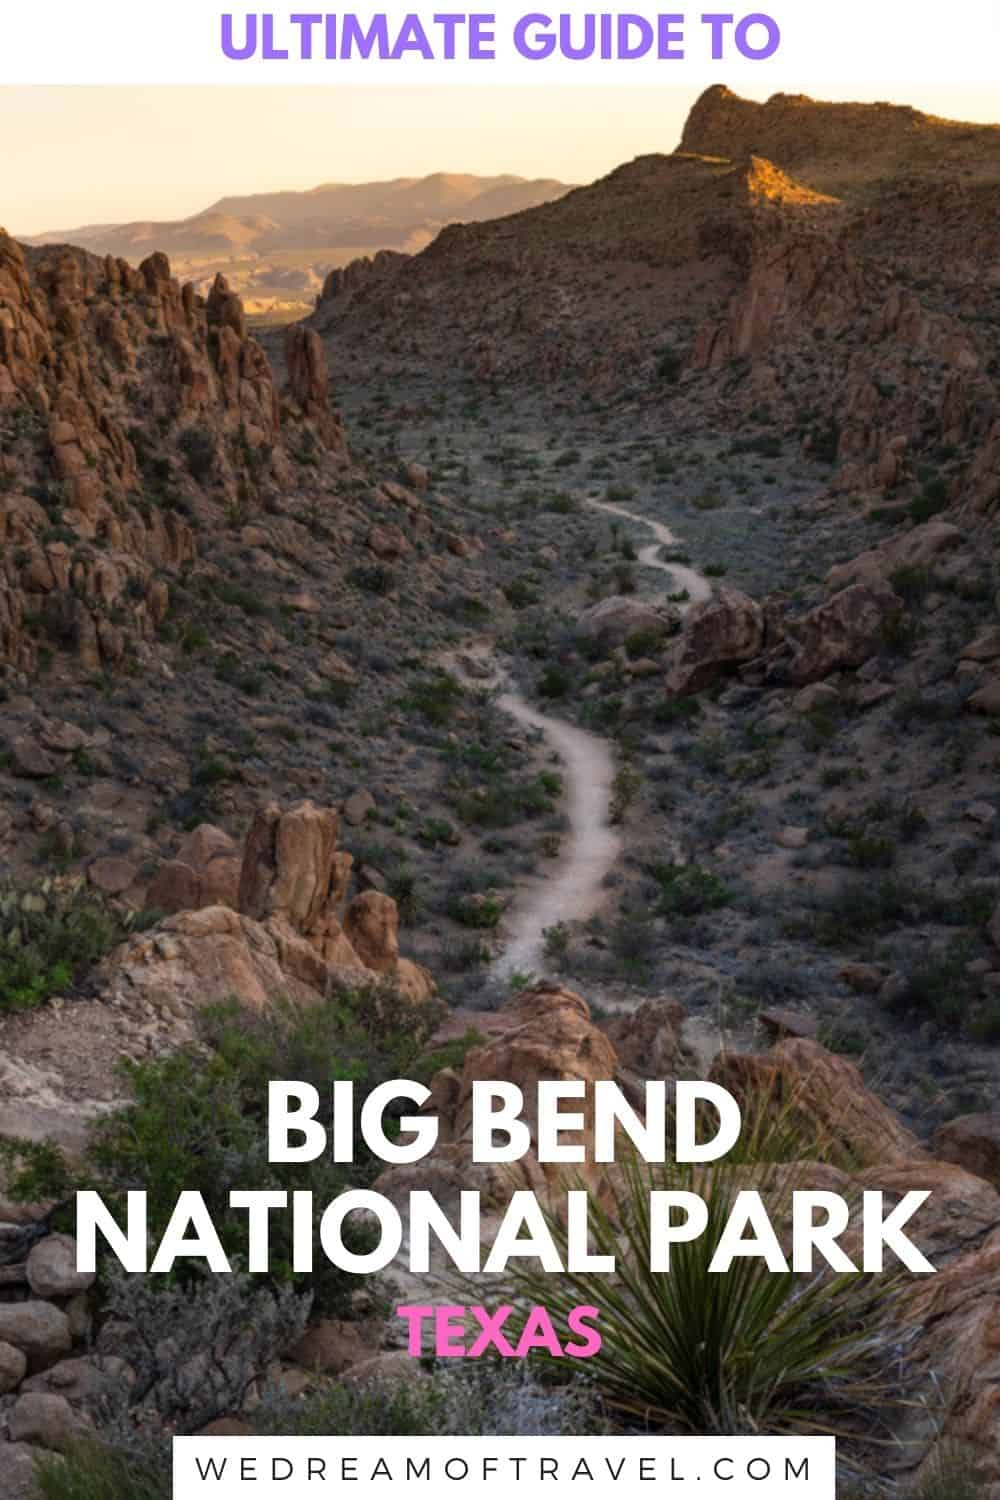 Big Bend National Park may be among the least heralded parks, but it is home to a uniquely beautiful desert ecosystem and an array of photography opportunities for those who know where, andwhen, to look.  There is a lot you need to know before you visit Big Bend NP. The searing climate, prickly vegetation, lack of shade, and sheer scale of the park are all factors to be carefully considered. However, many of these are the very same elements that contribute to its beauty.  This ultimate guide to Big Bend has everything you need to know about visiting this wonderful park!  Big Bend National Park Texas |  Things to do in Big Bend | Big Bend National Park Camping | Big Bend National Park Lodging | Big Bend National Park Hiking | Big Bend National Park Photography